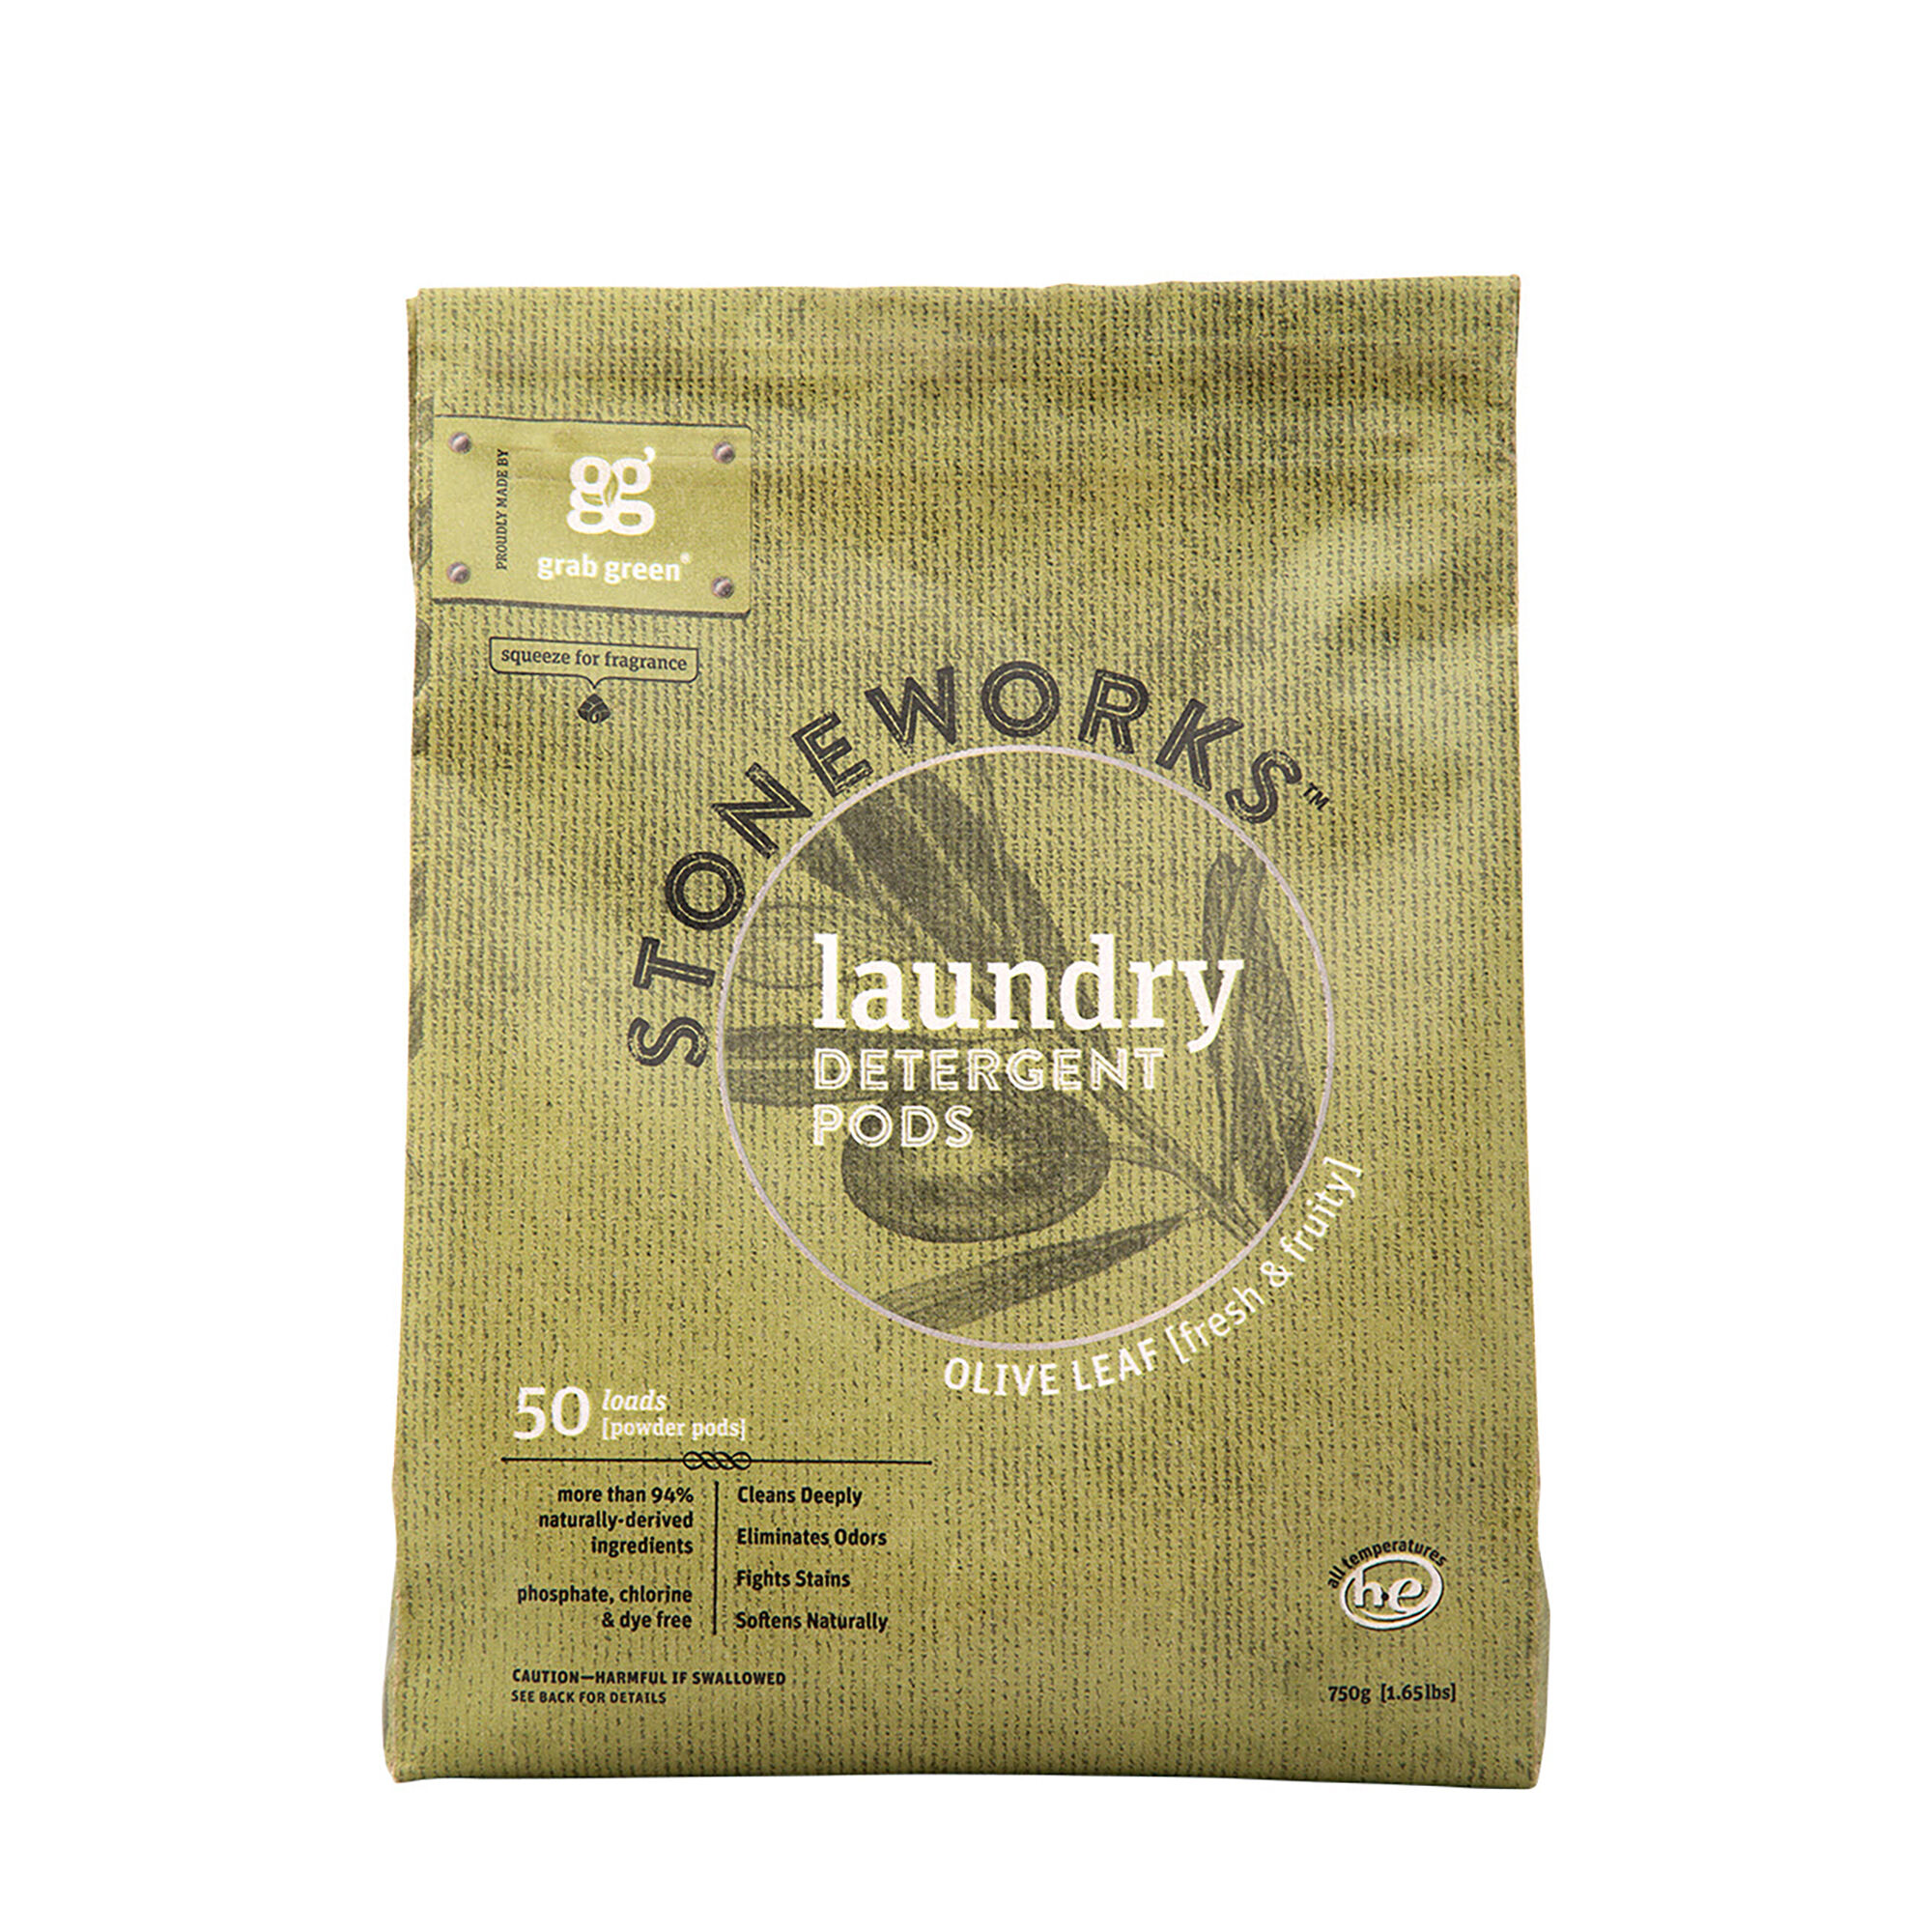 Stoneworksg Laundry Detergent Pods Olive Leaf 50 Loads Grab GreenNatural Cleaning Products